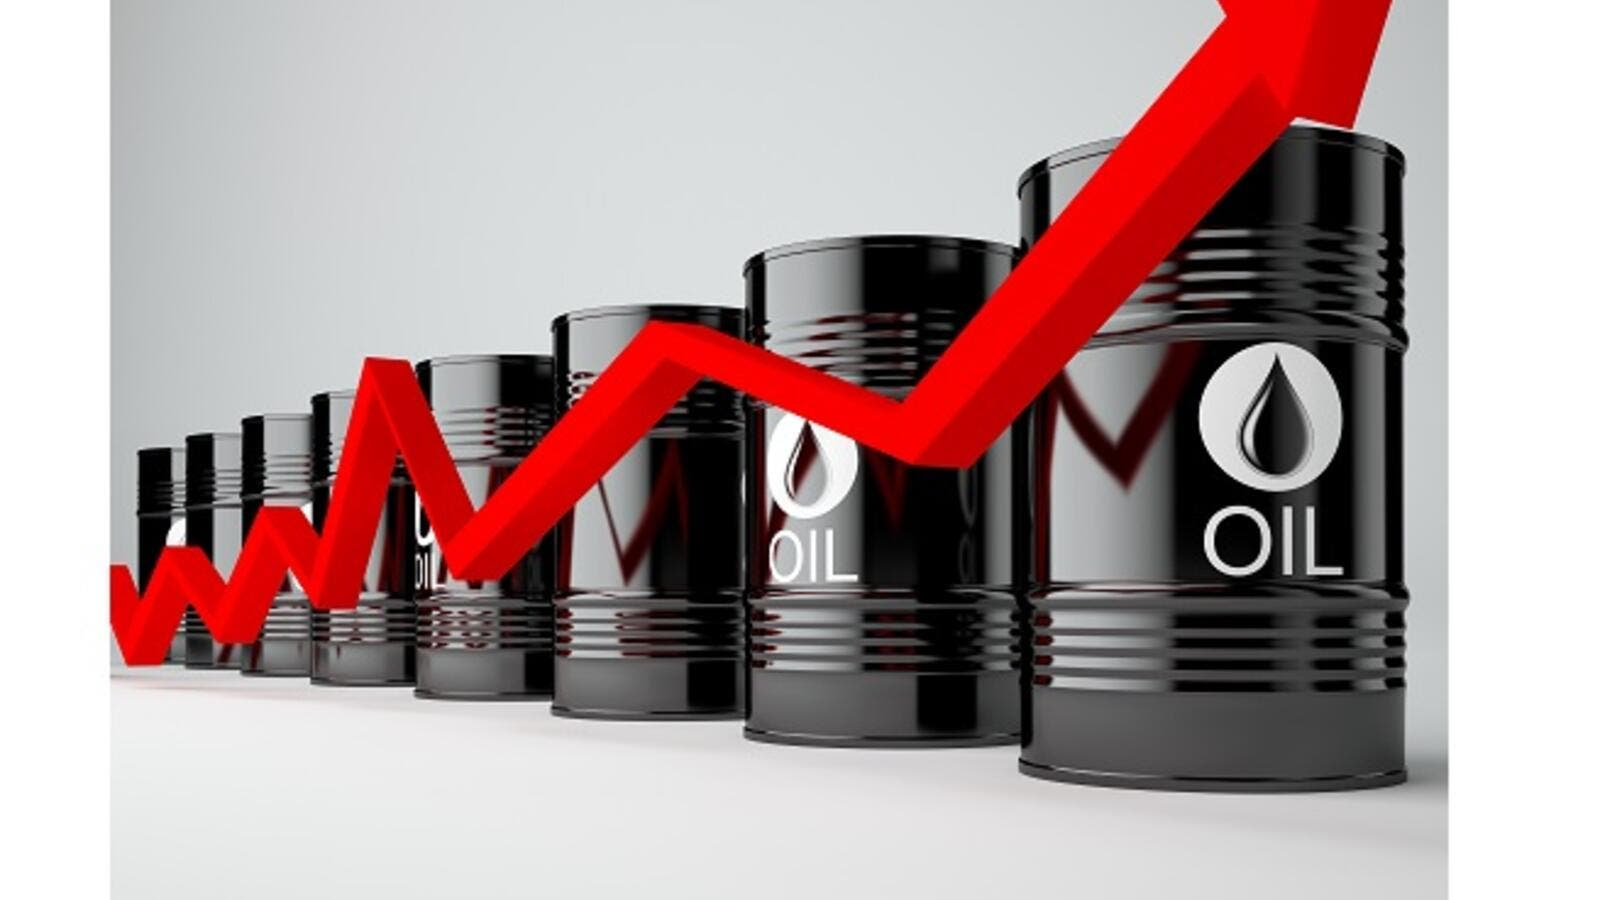 Apicorp made the prediction in a report as the oil price again ticked higher, supported by the hopes that talks between China and the US would defuse current trade tensions. (Shutterstock)